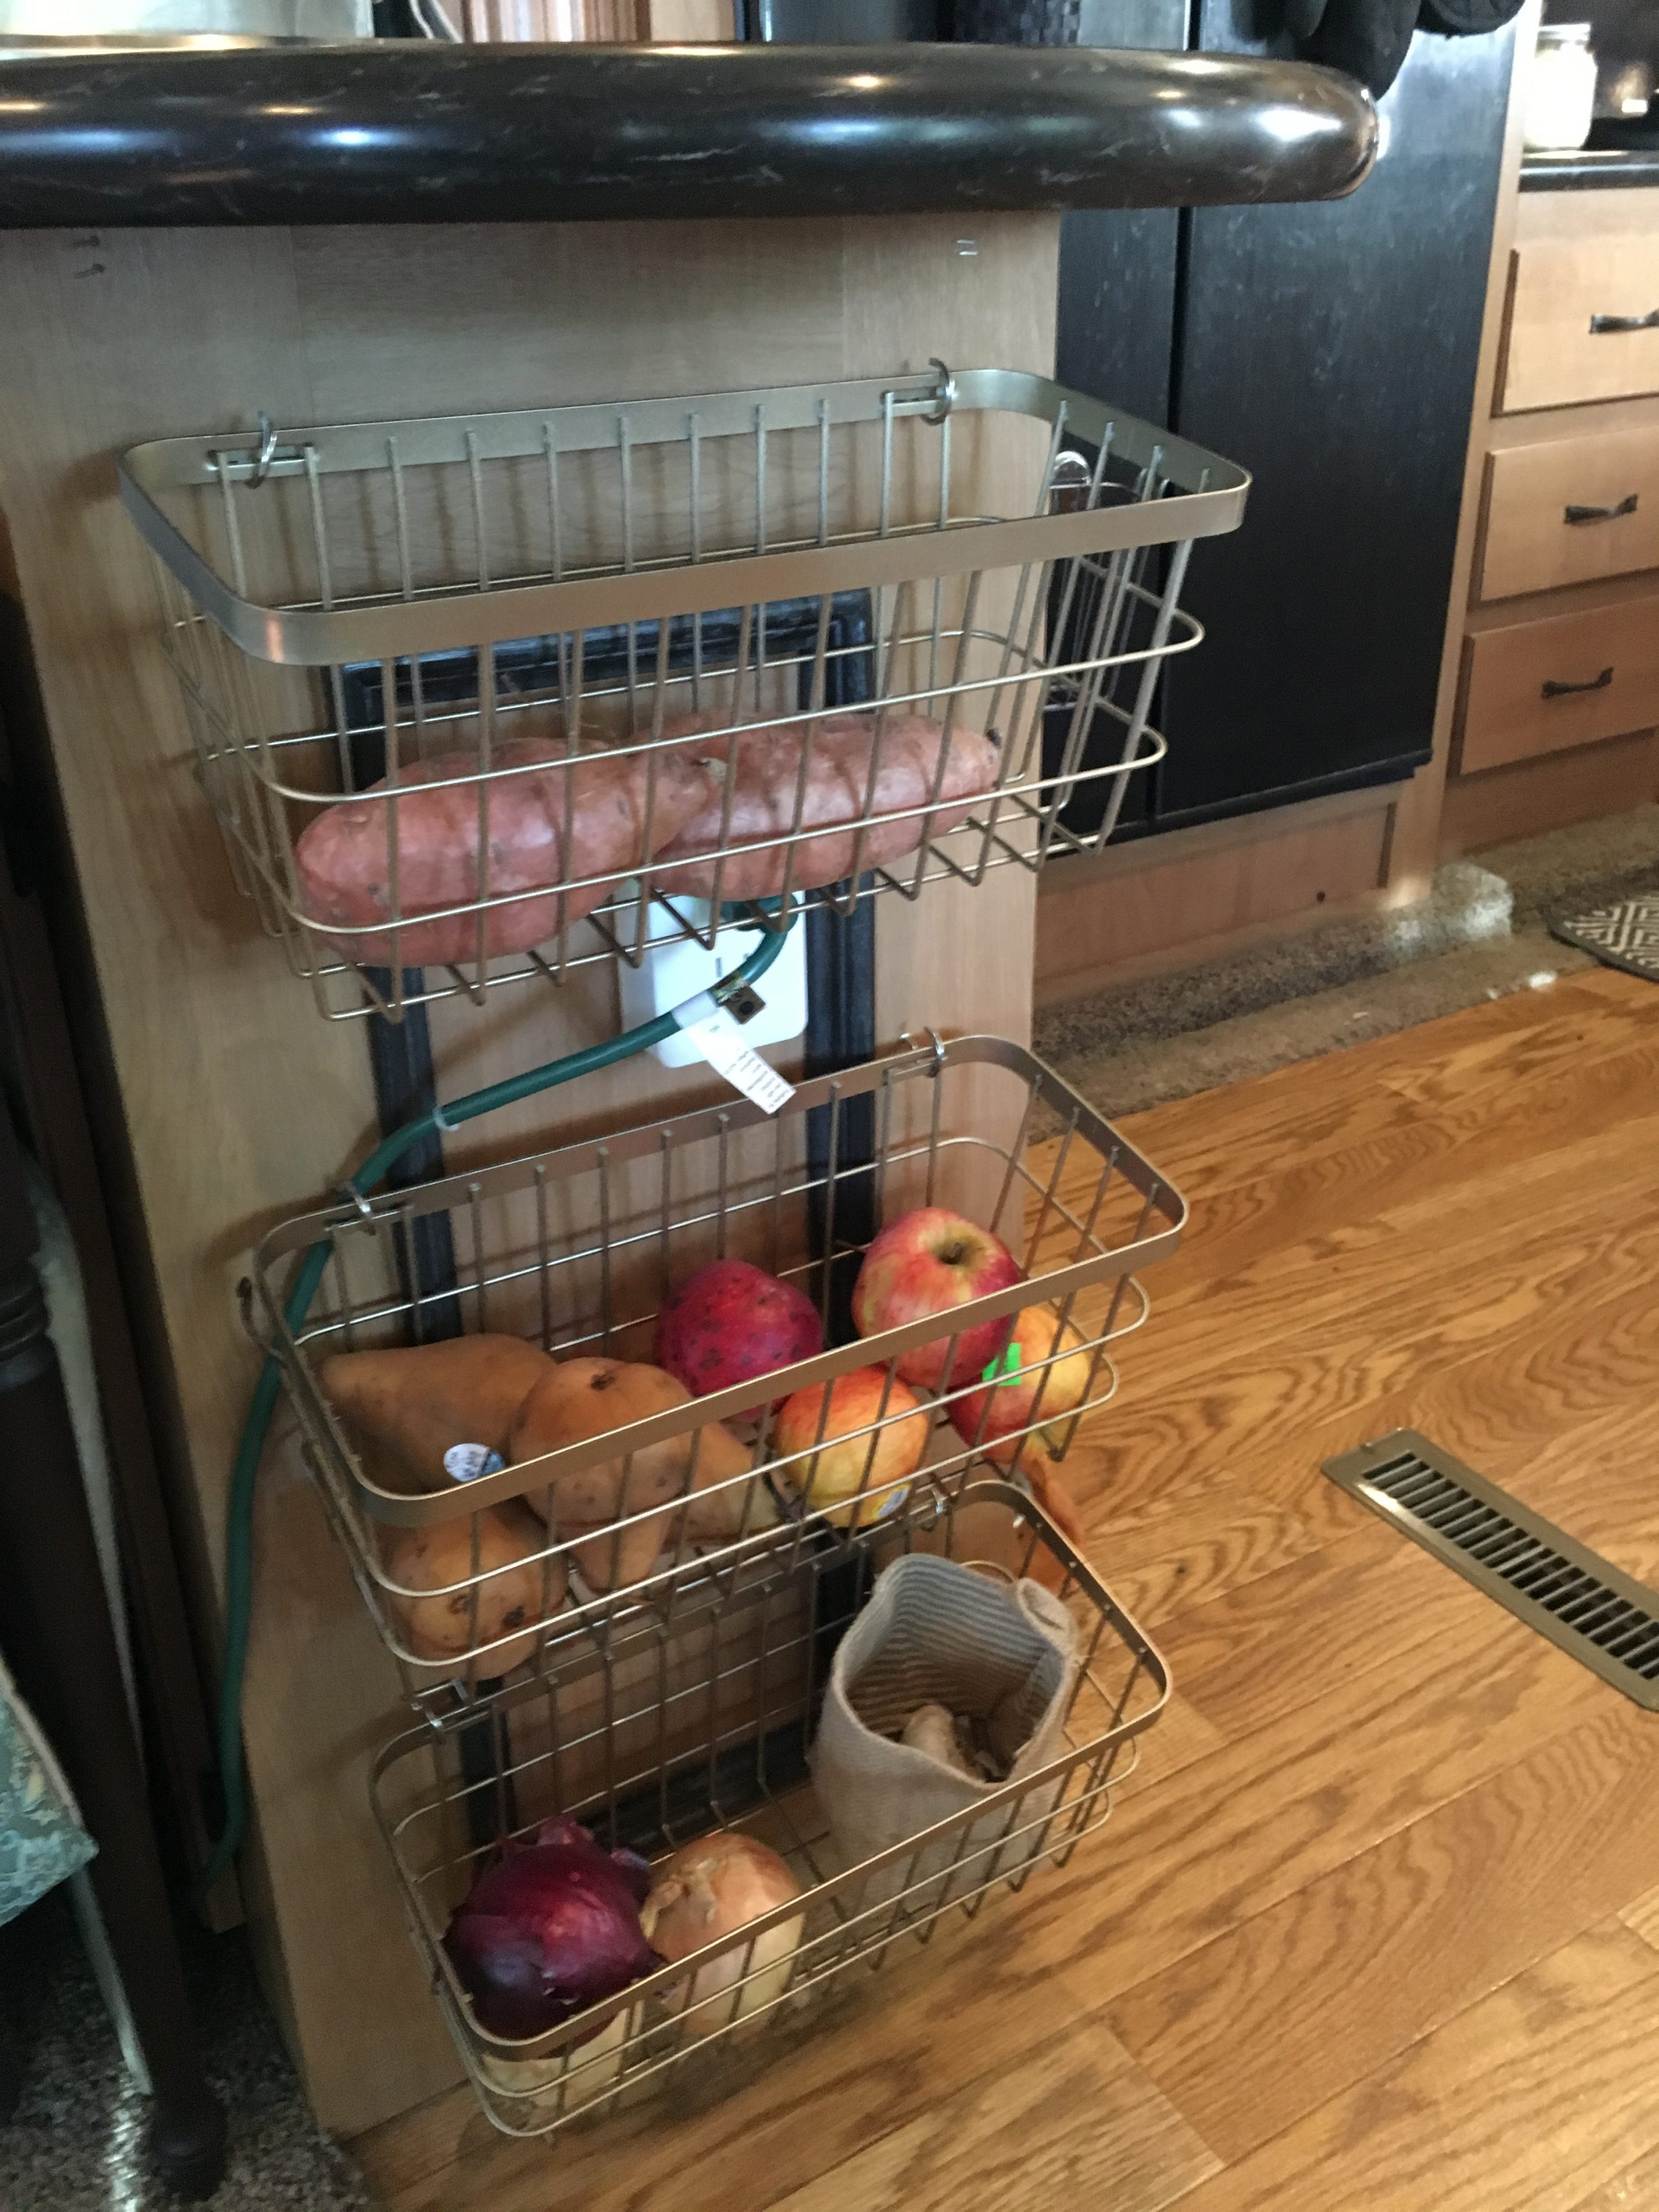 Over cabinet basket for fruit / root vegetable storage | RVinspiration.com | Ideas for campers, motorhomes, and travel trailers